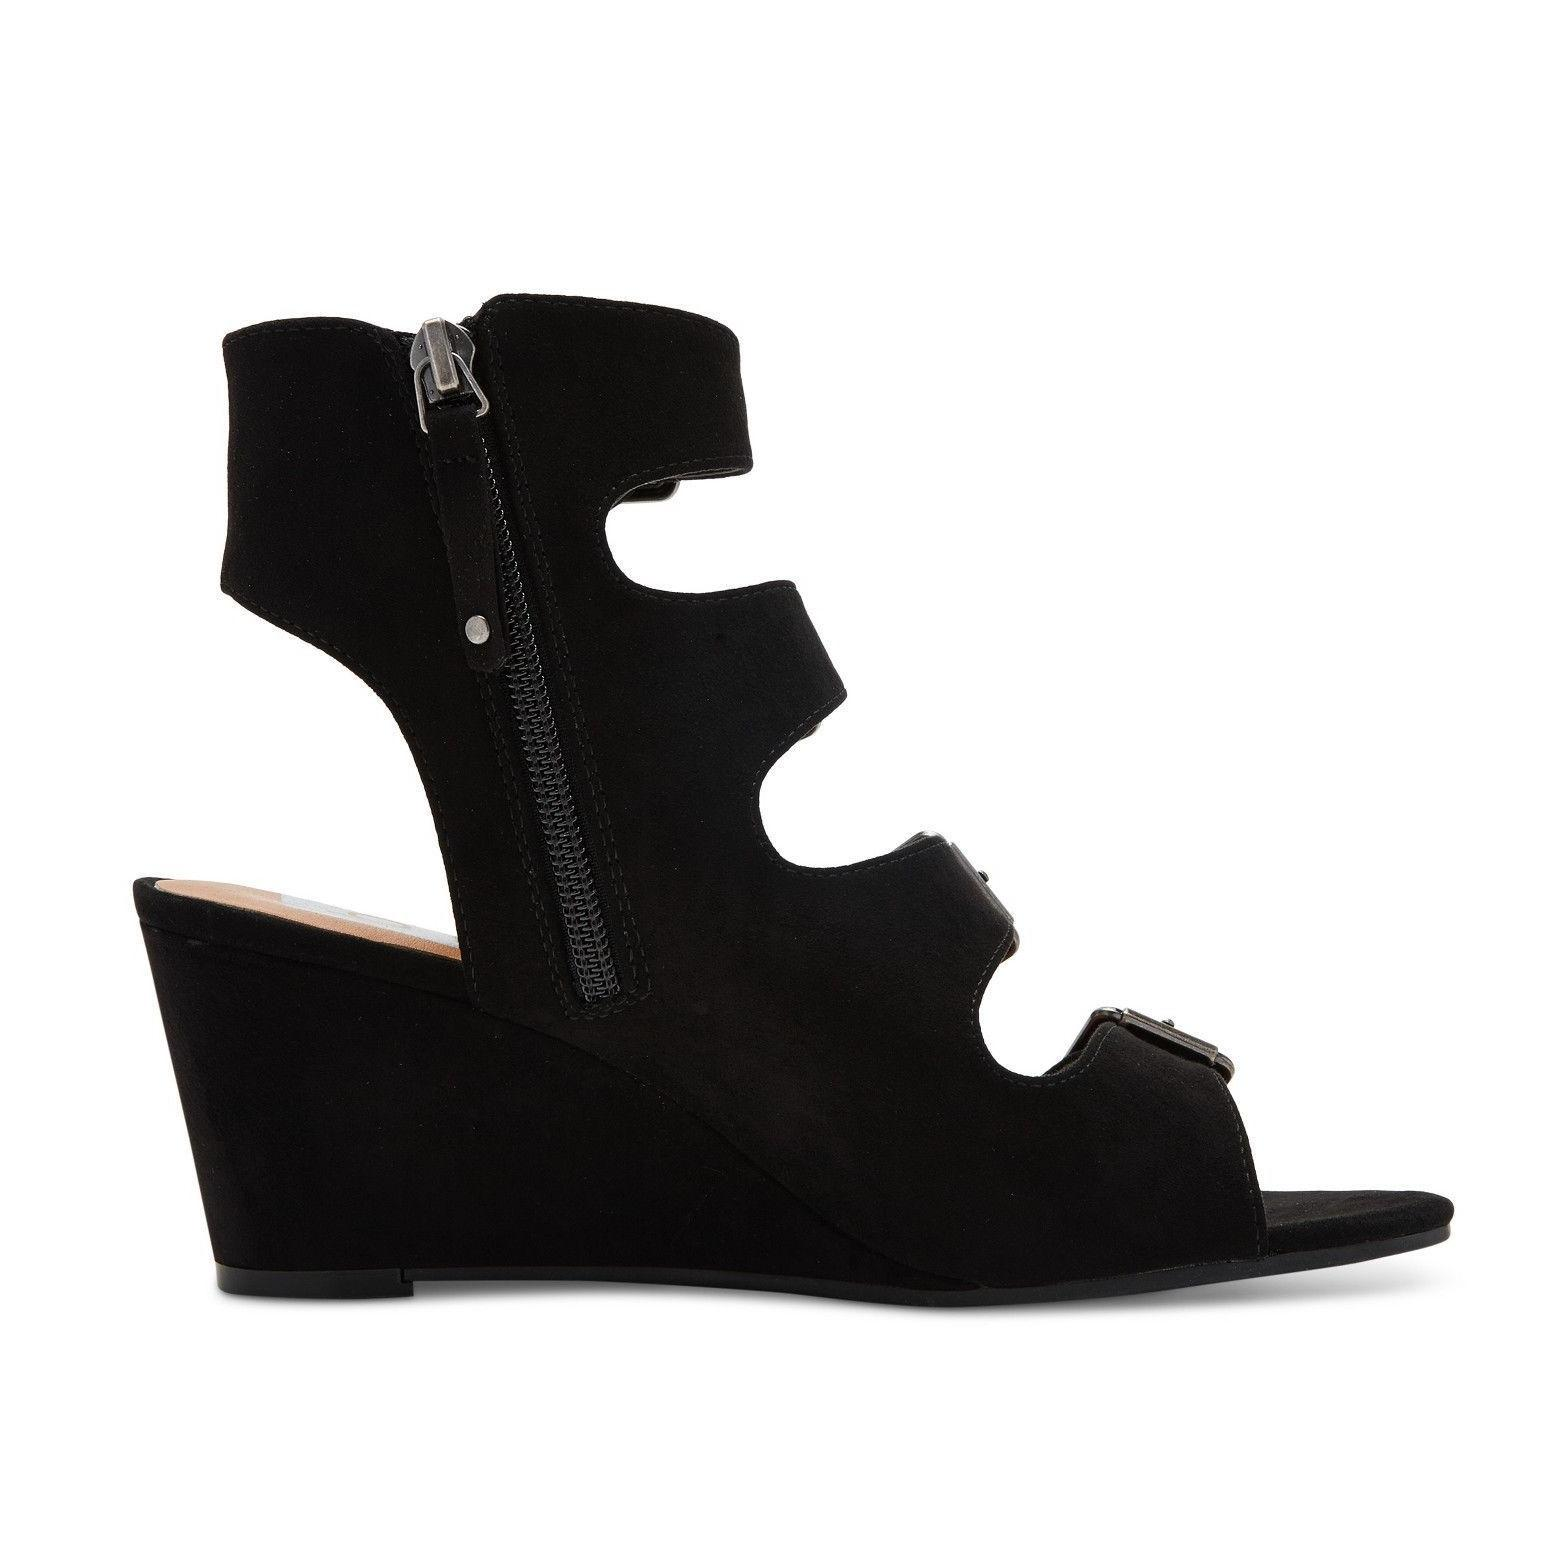 New Dolce LeeAnn Wedge Sandals